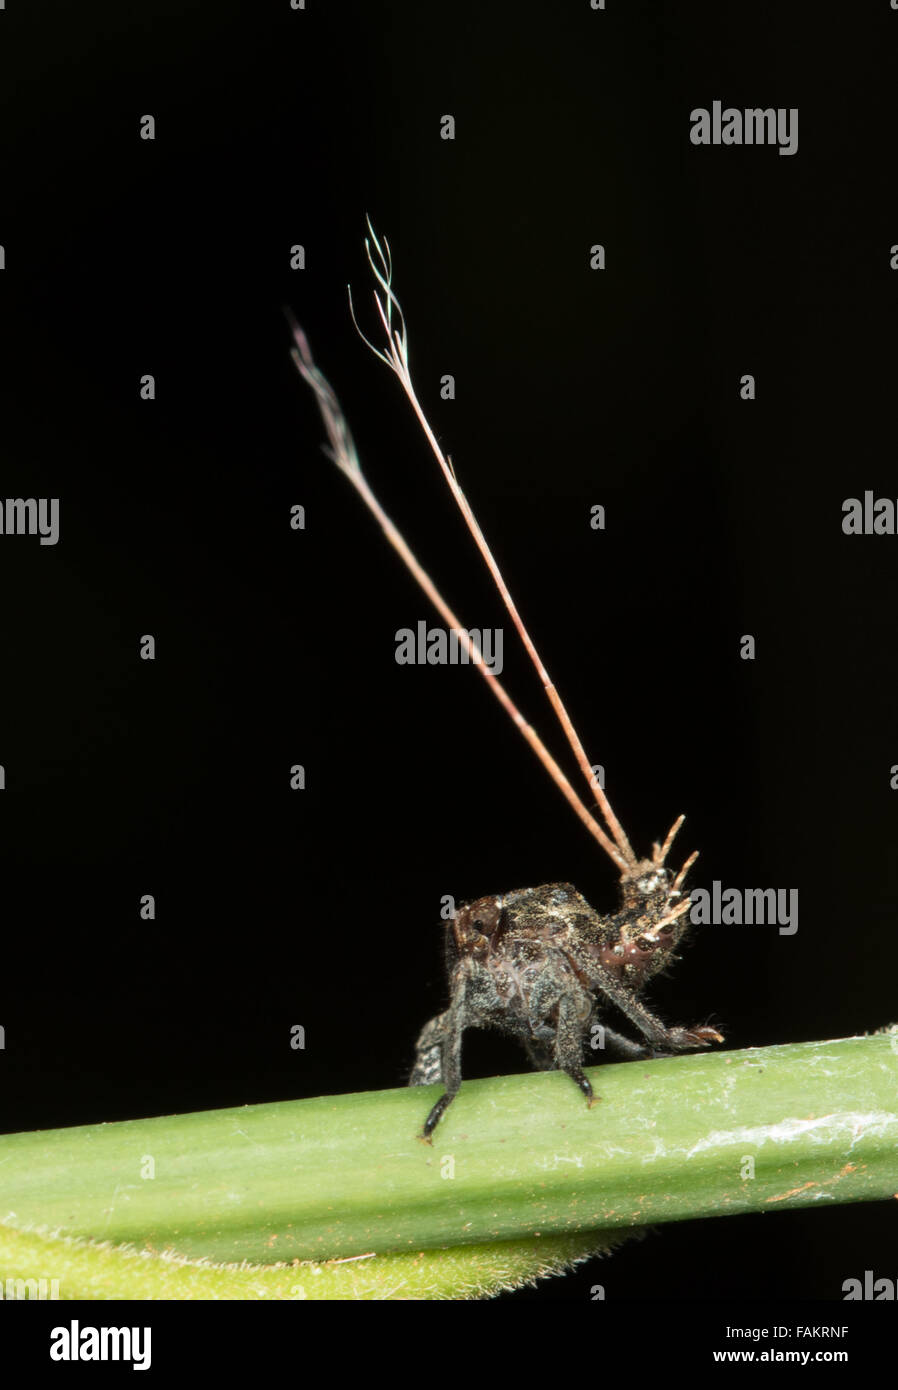 A planthopper nymph that uses appendages for protection - Stock Image